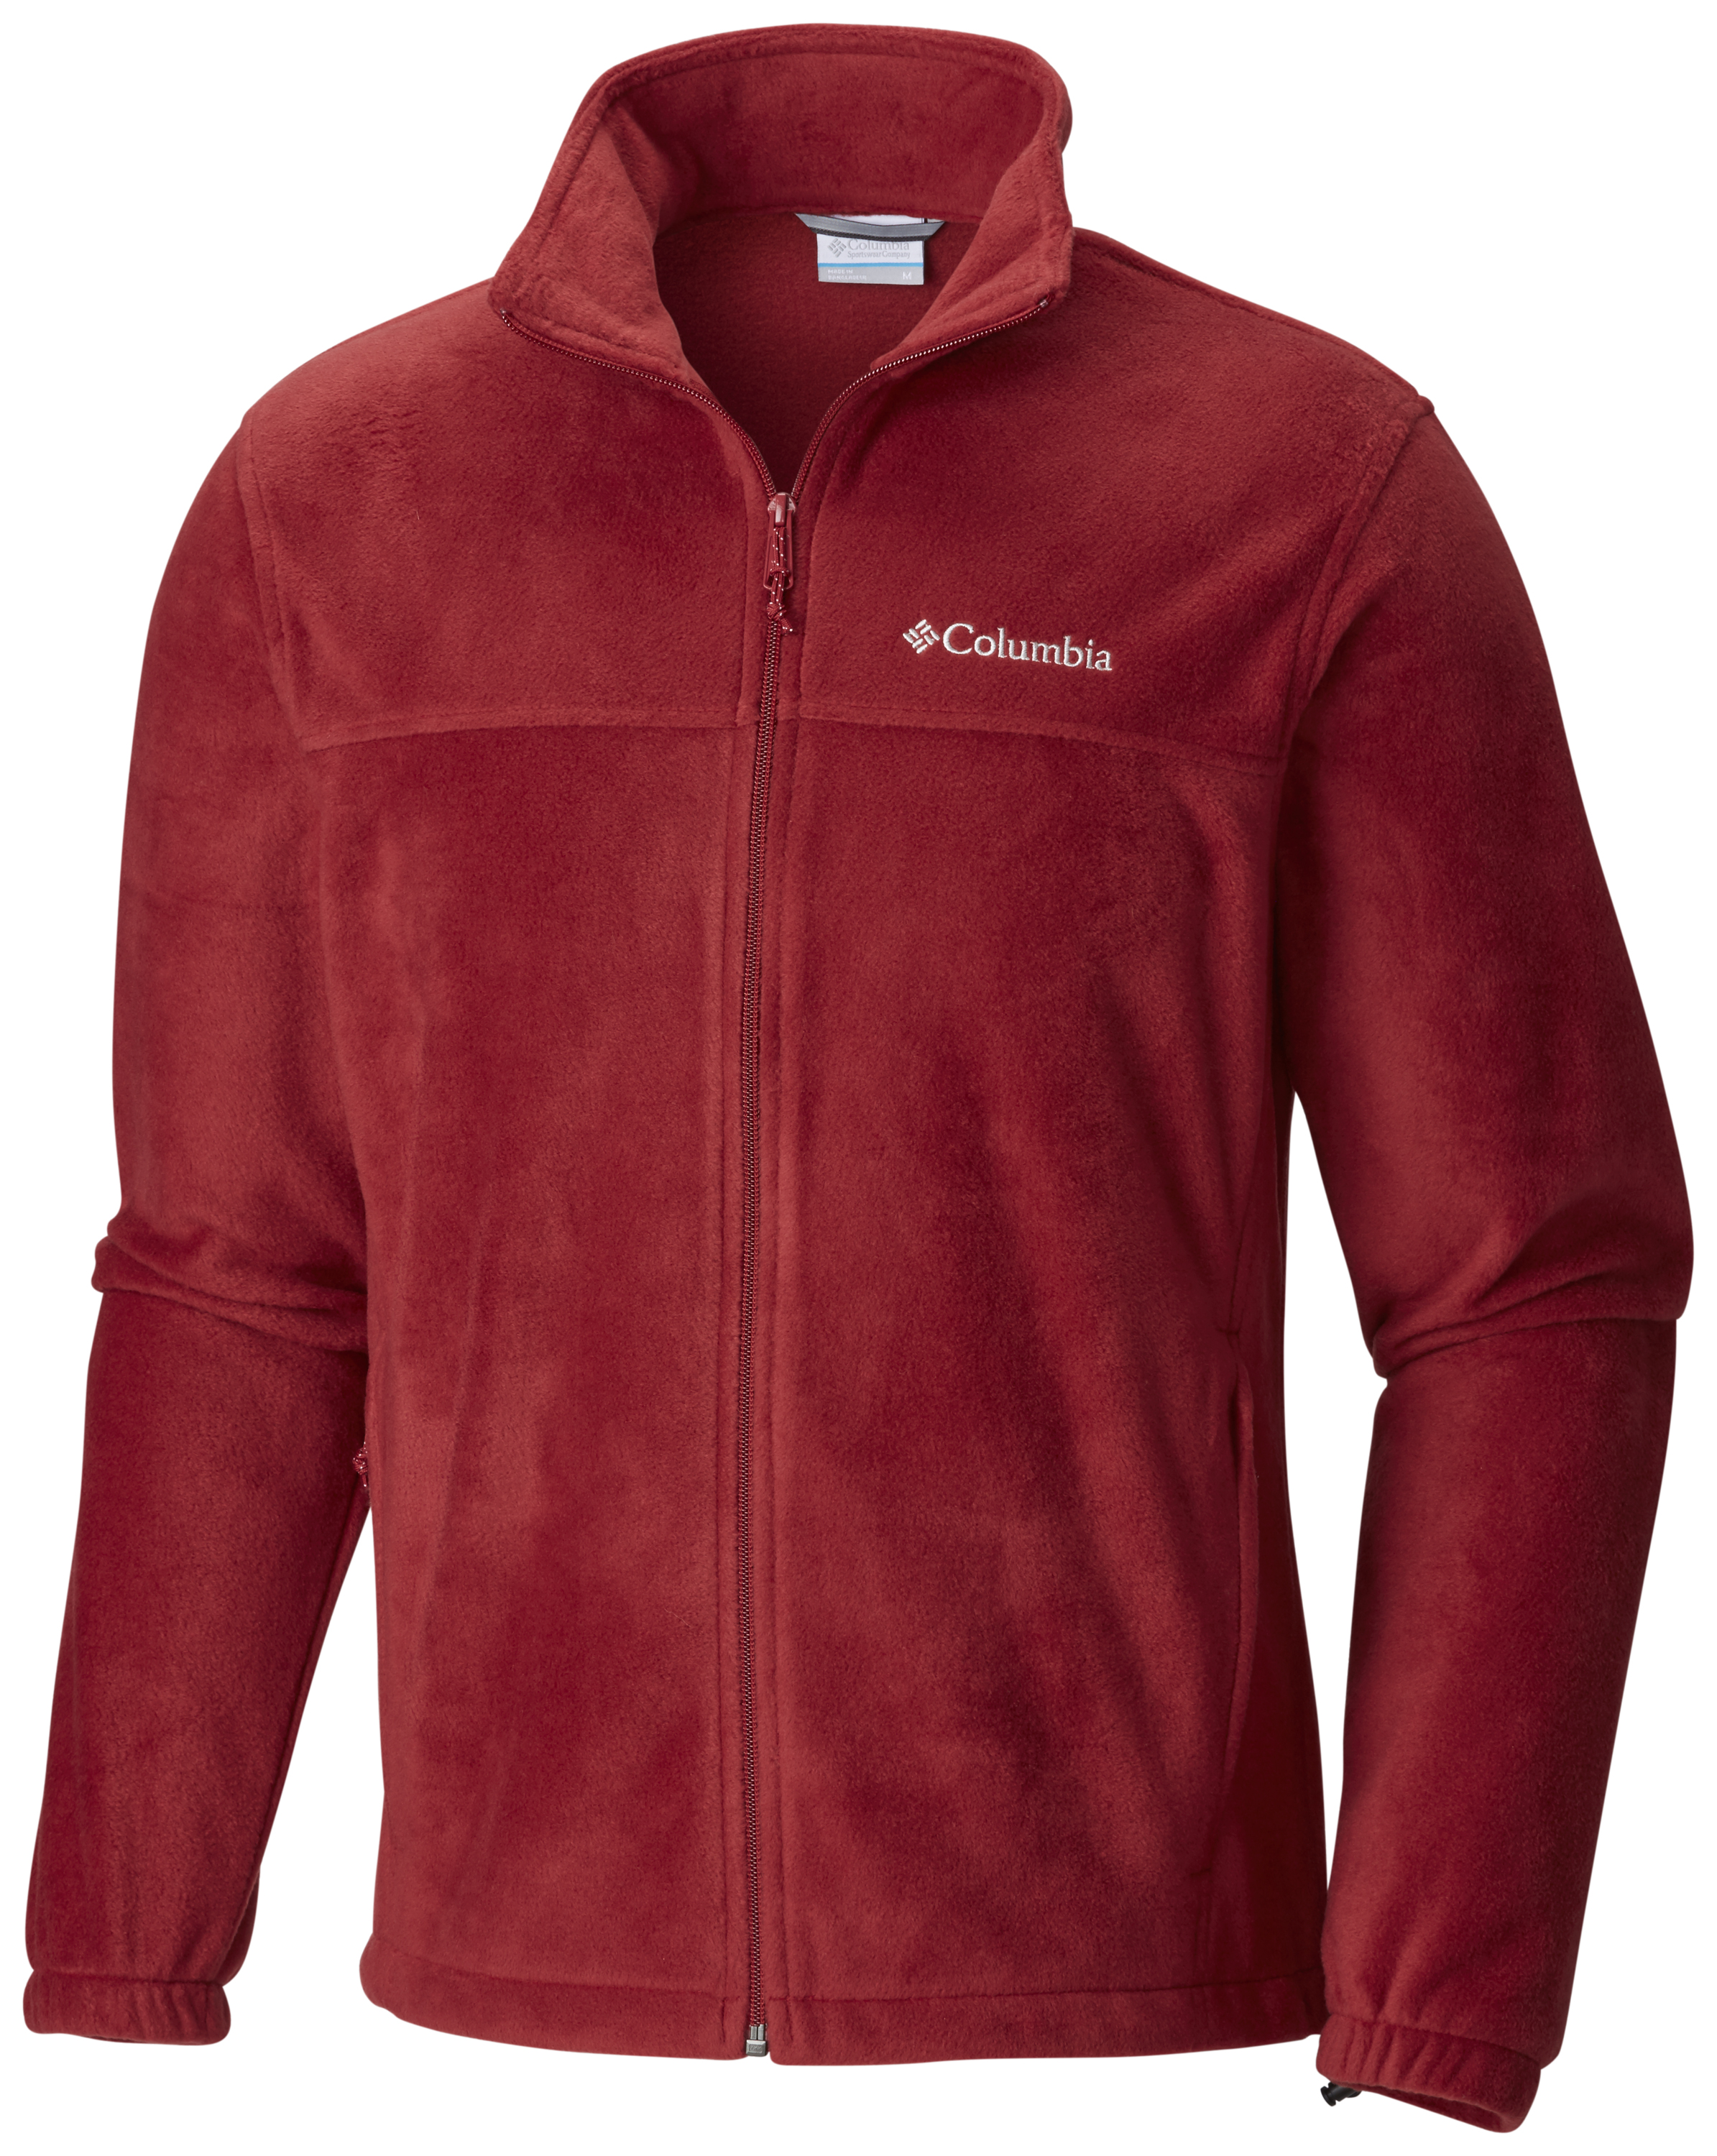 WM3220-612 STEENS MOUNTAIN™ FULL ZIP 2.0 COLUMBIA